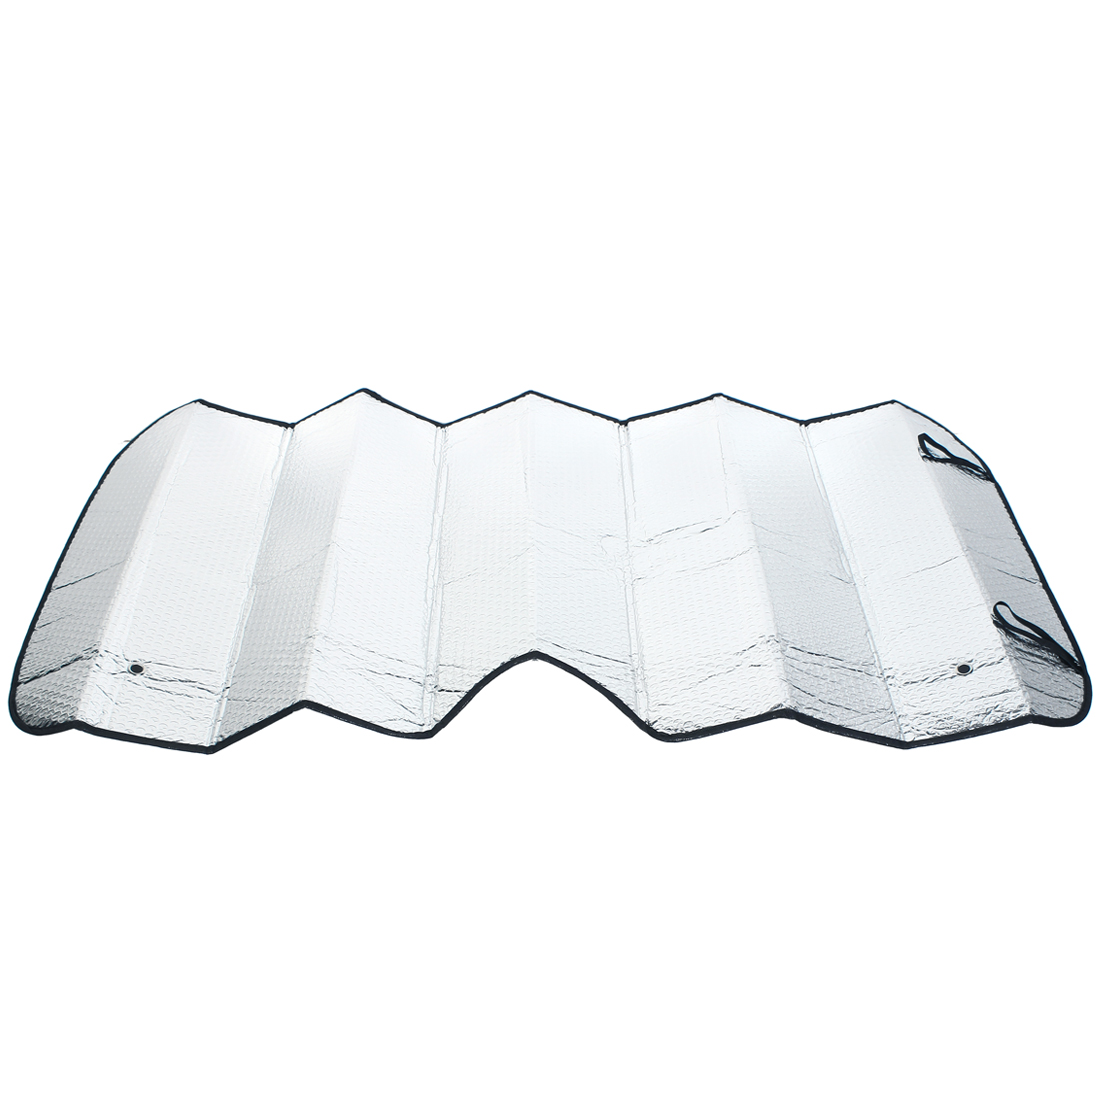 Car Vehicle Auto Windsreen Front Window Visor Windshield Sunshade Silver Tone 126cm x 60cm w Suction Cup